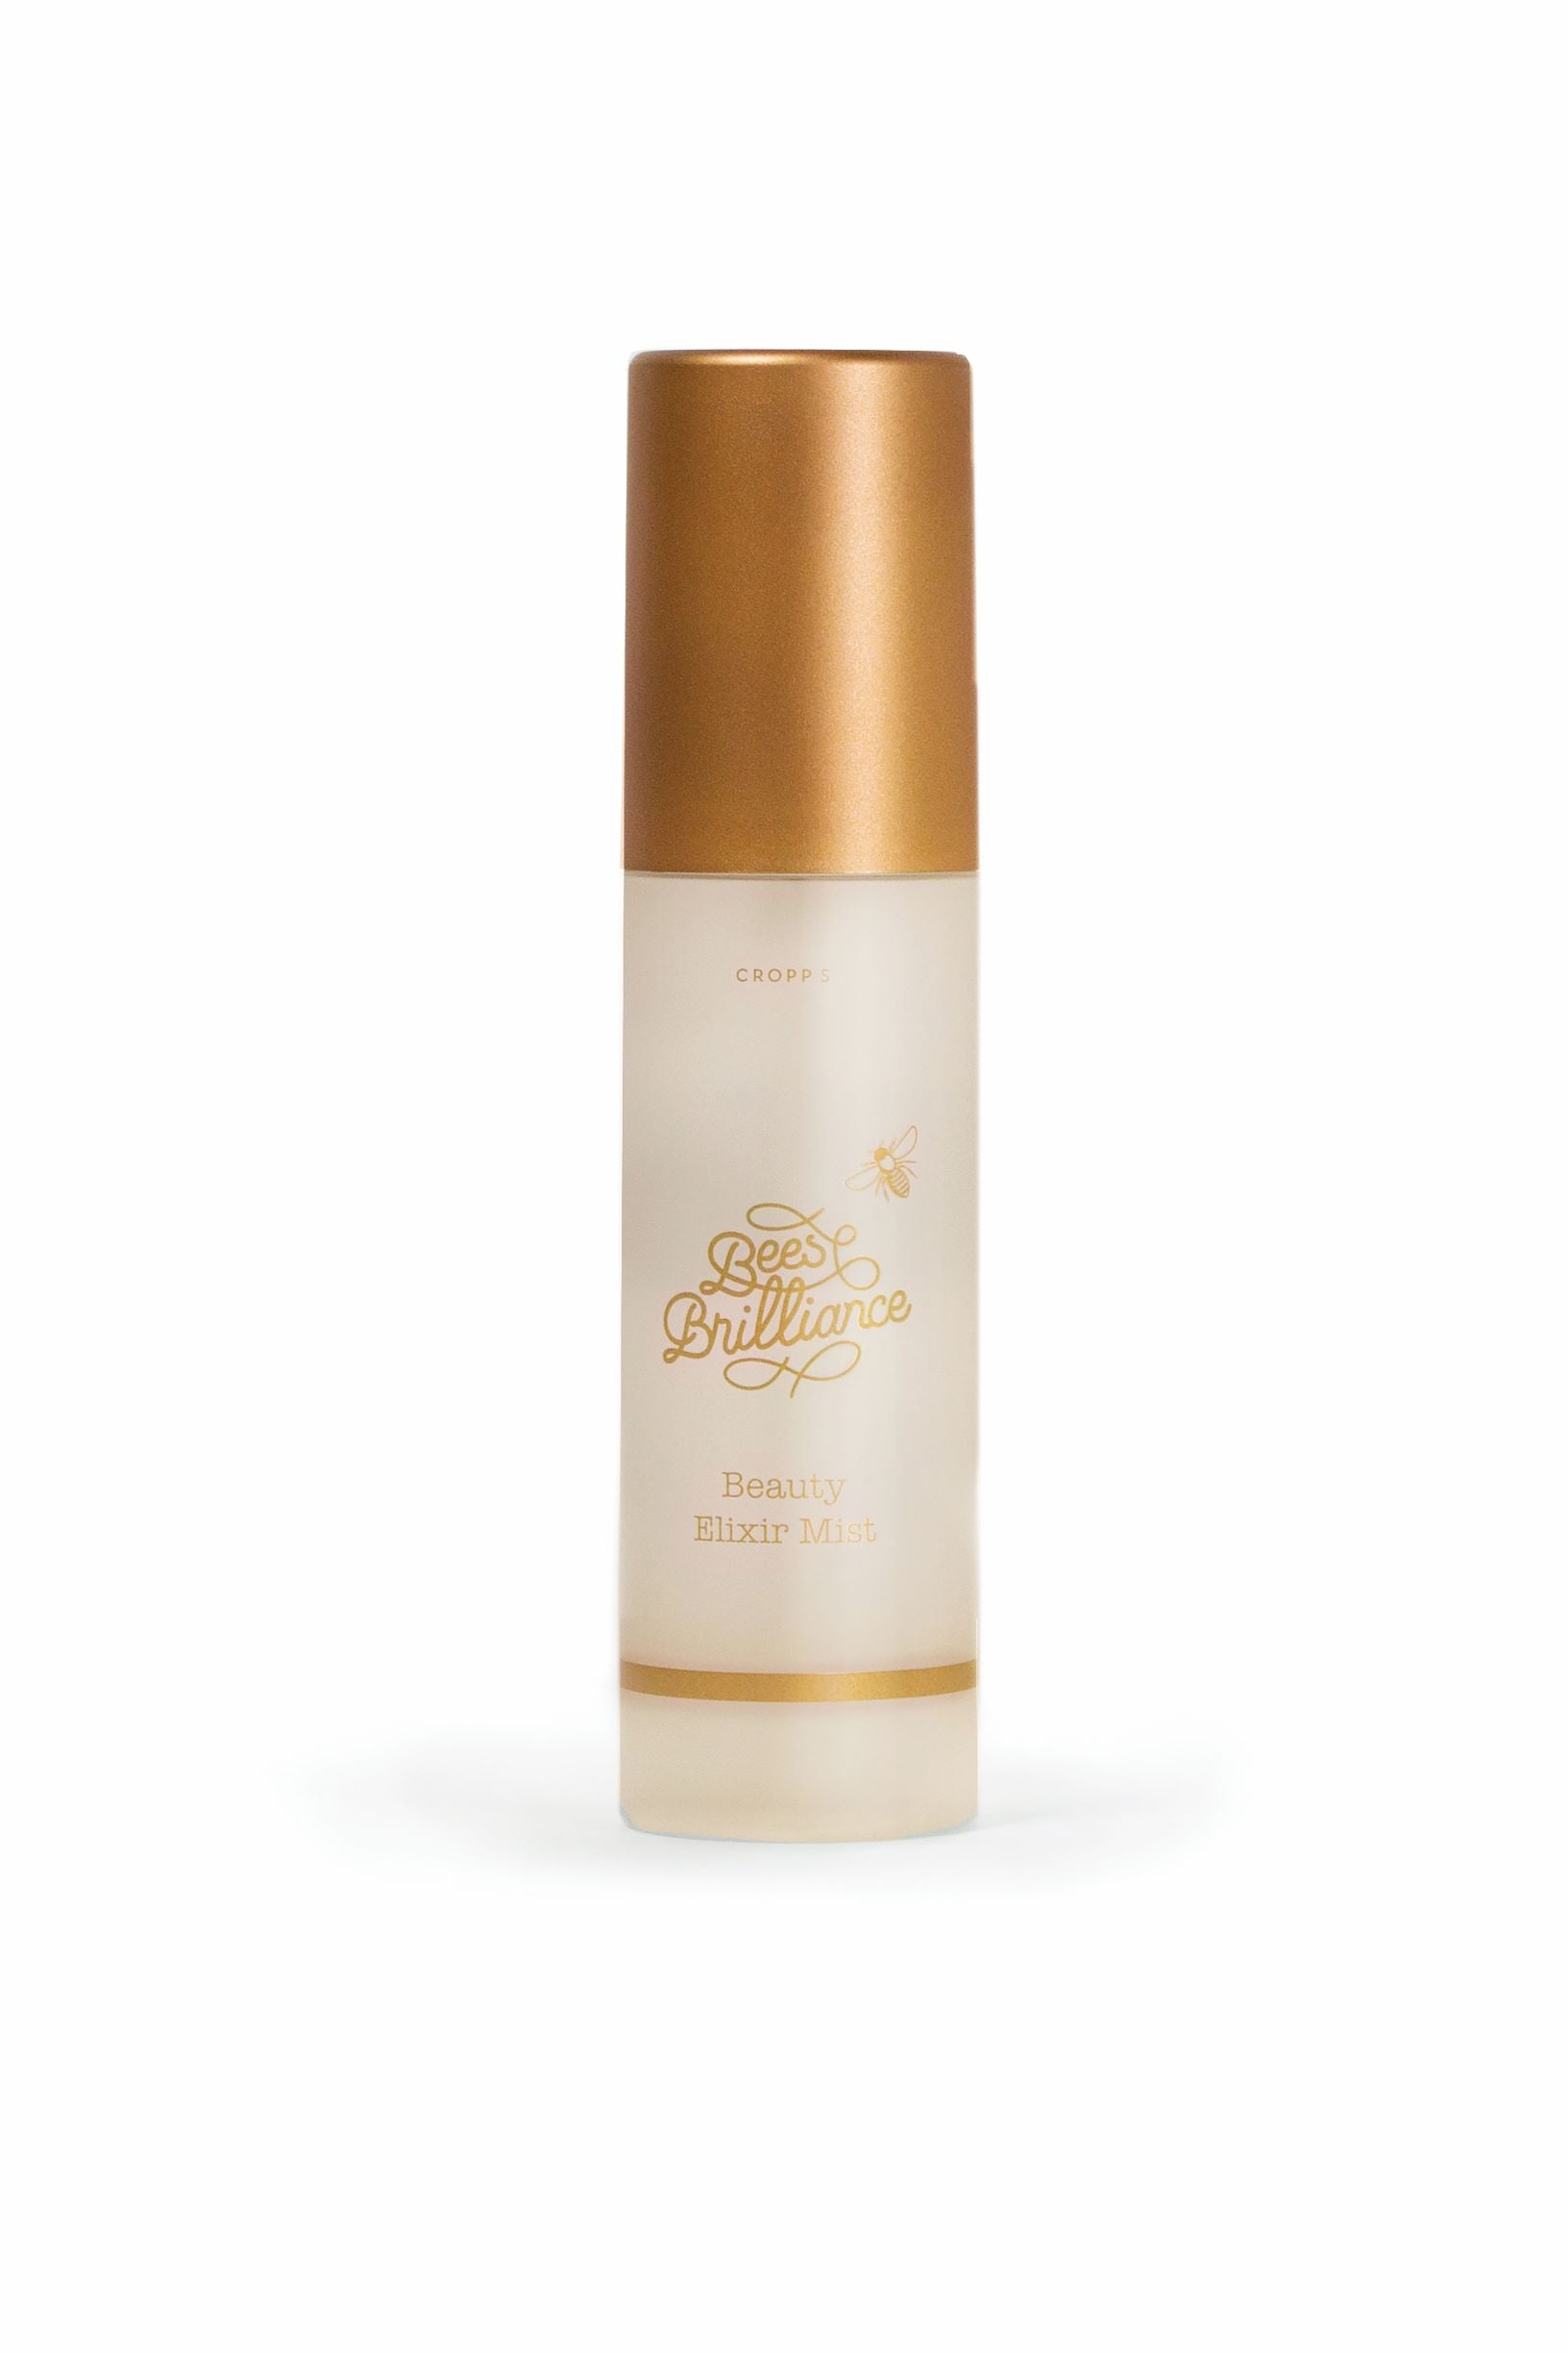 Beauty Elixir Mist